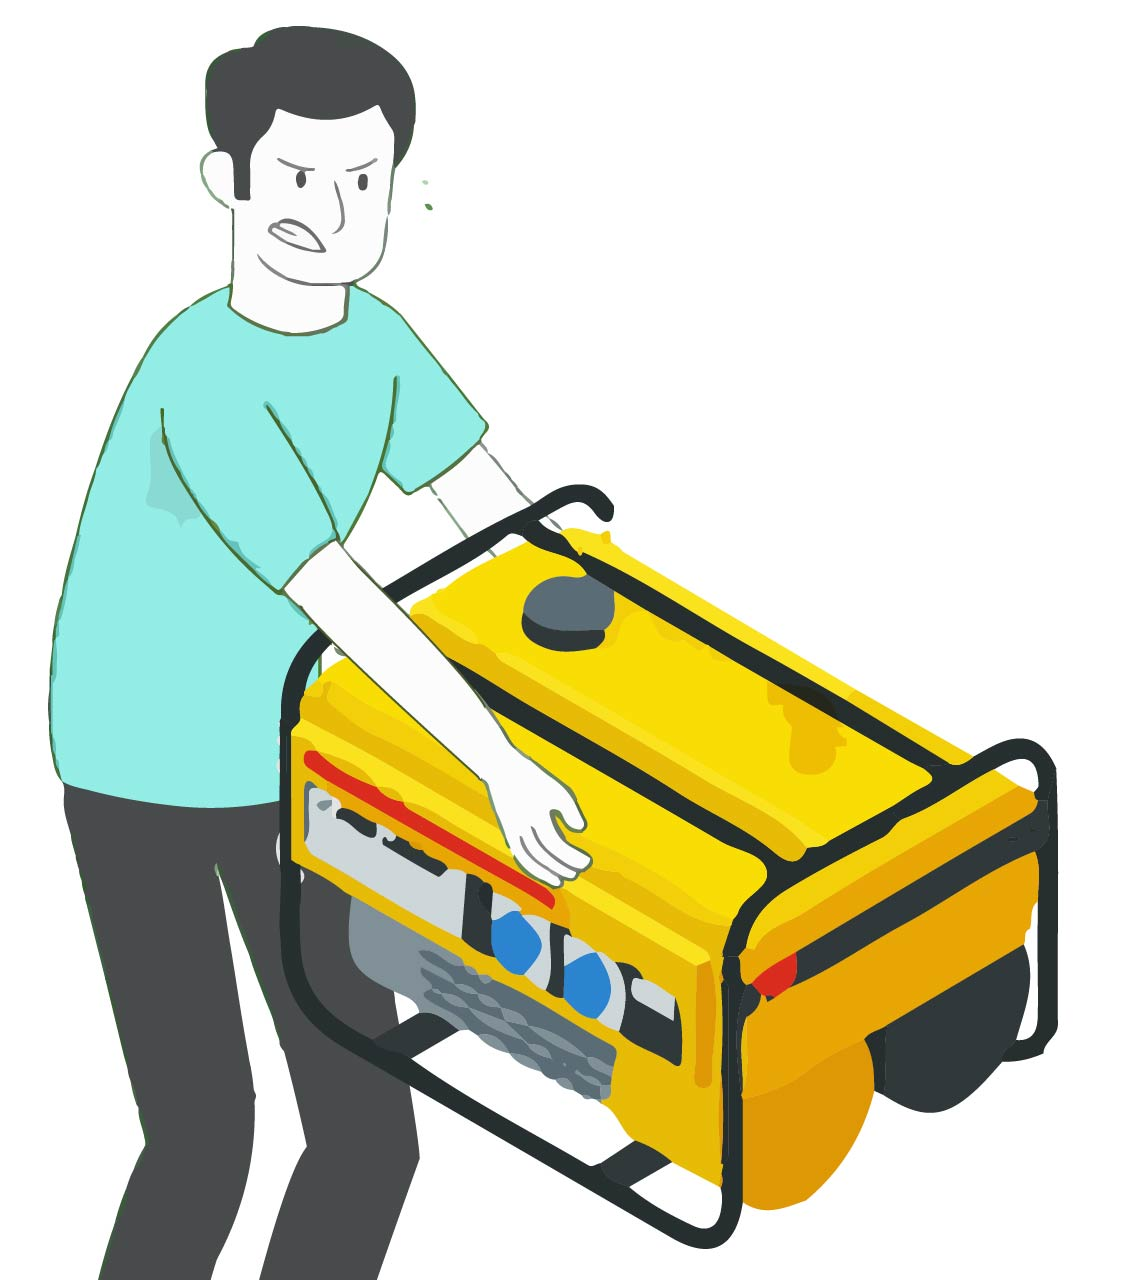 Generator removal & disposal services